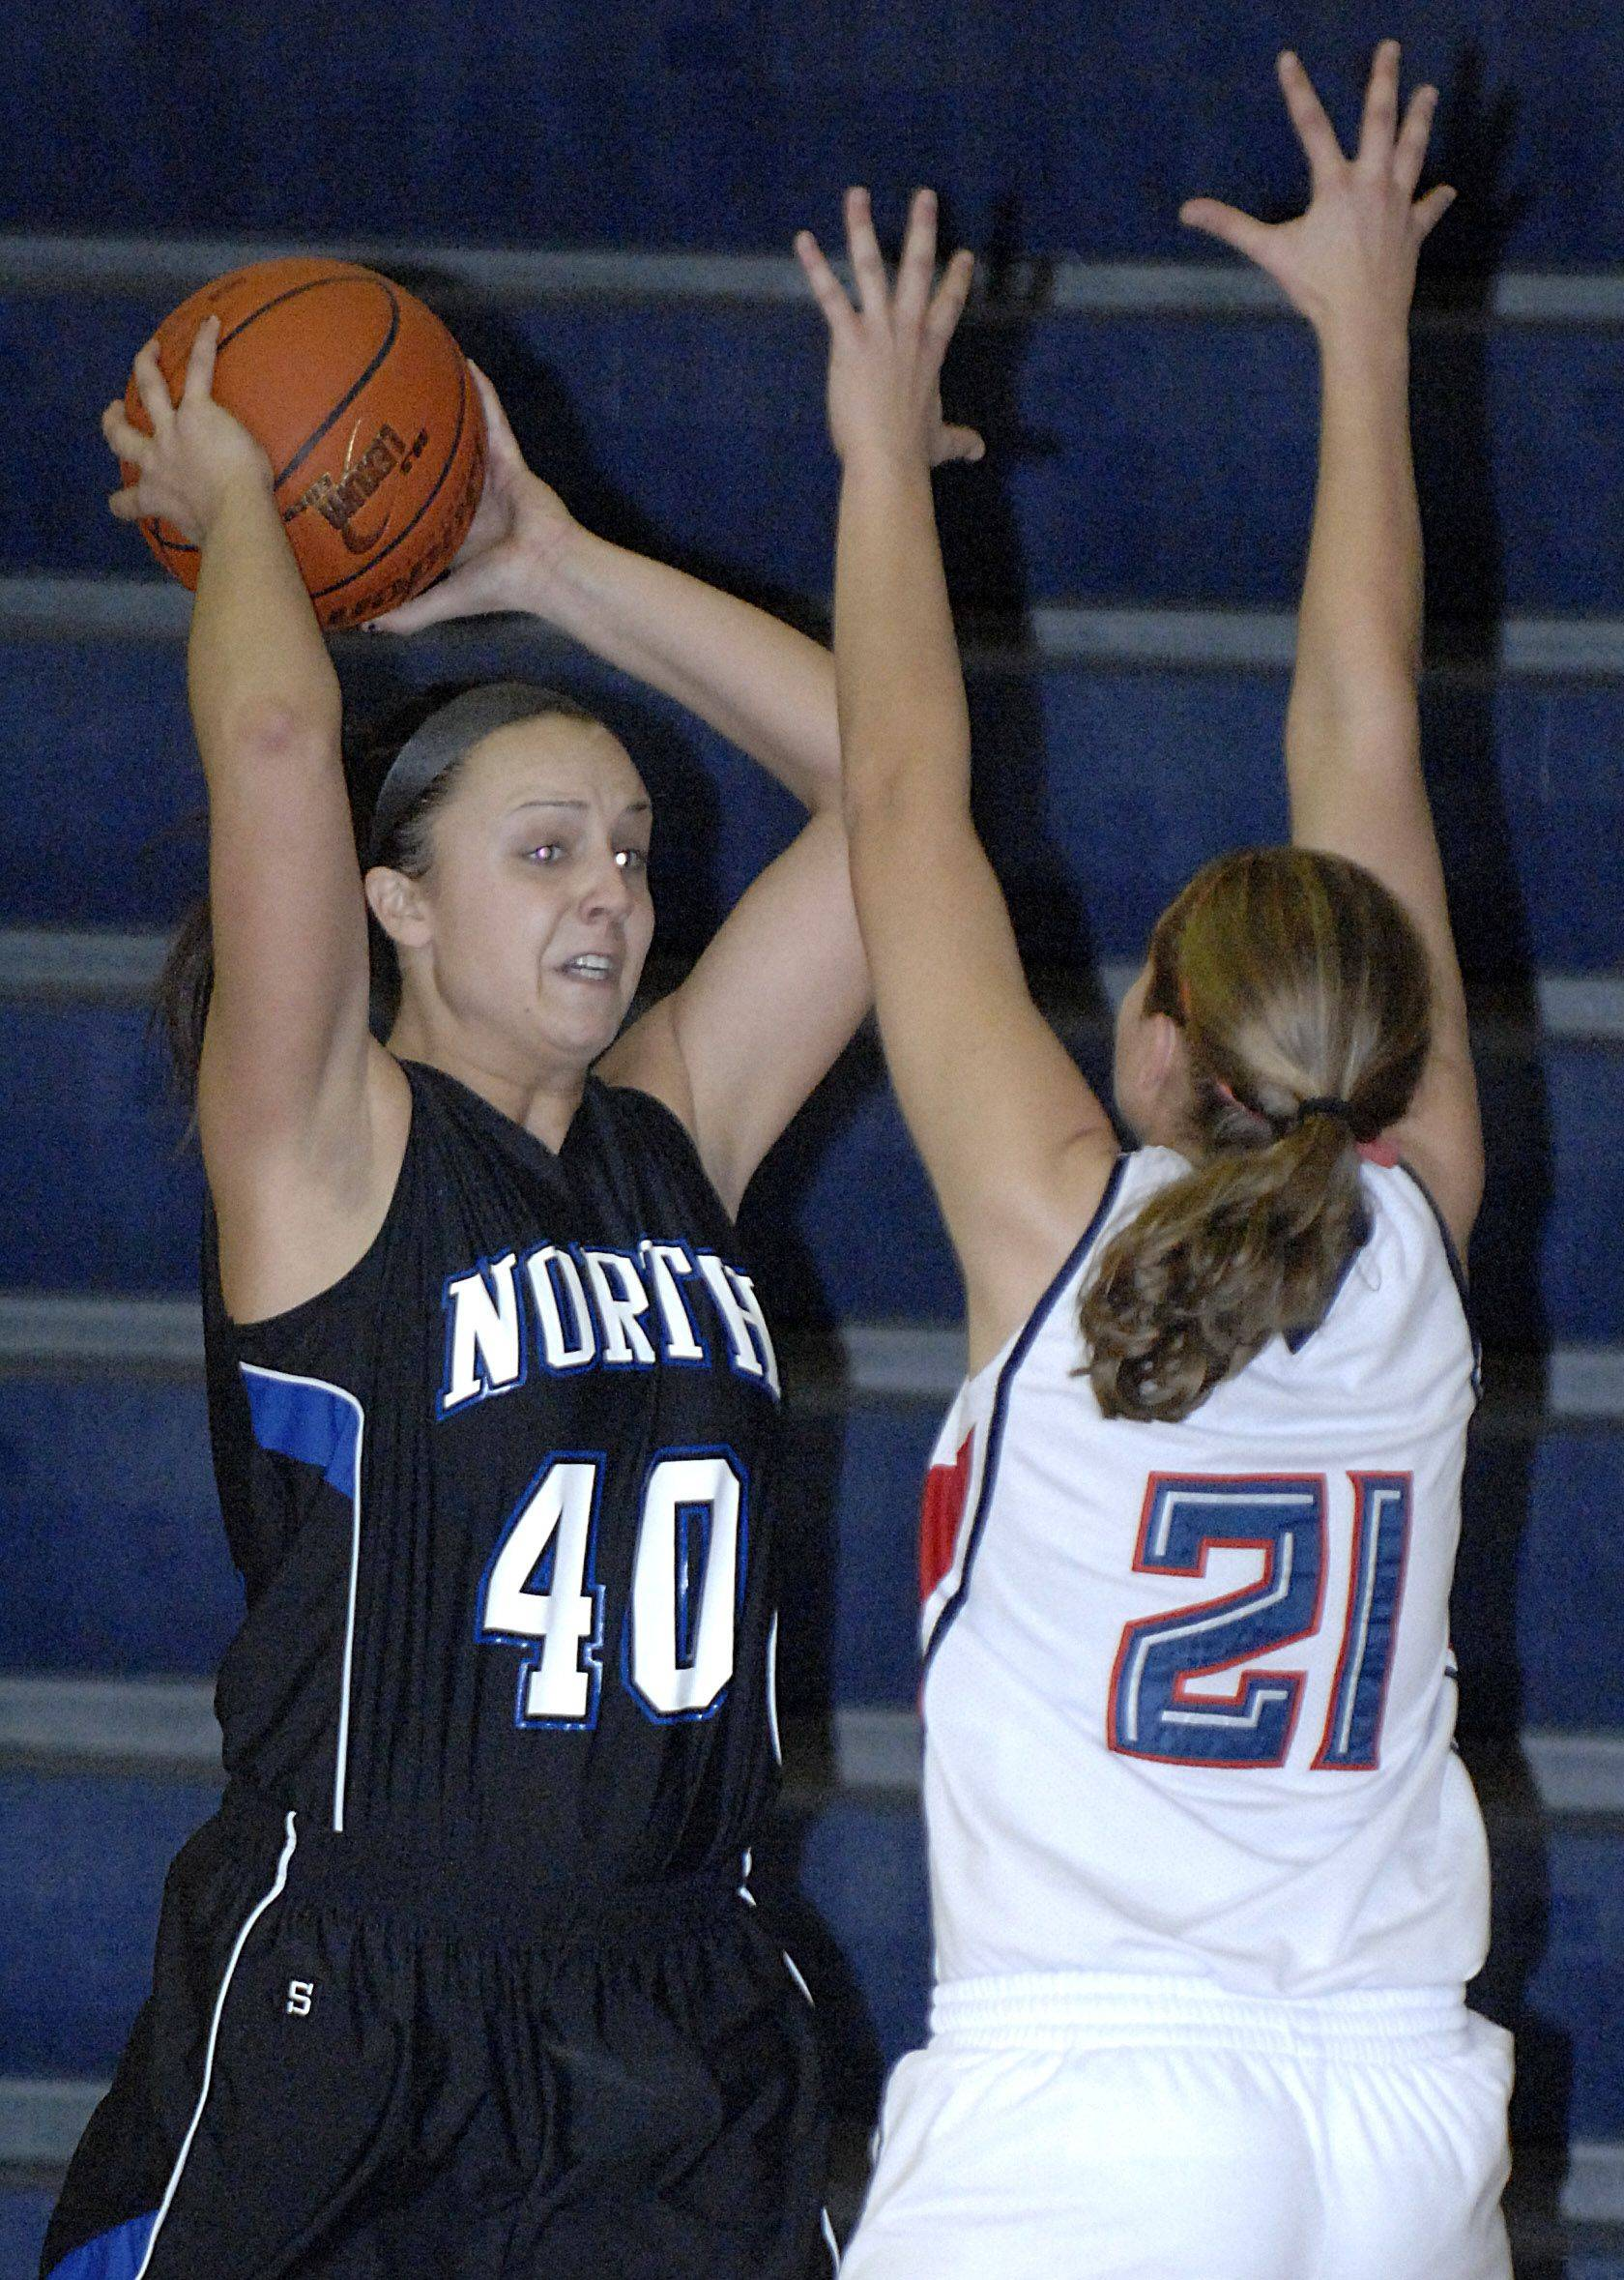 Laura Stoecker/lstoecker@dailyherald.com South Elgin's Amanda Behles attempts to block a pass by St. Charles North's Tess Fischer in the first quarter on Saturday, December 11.